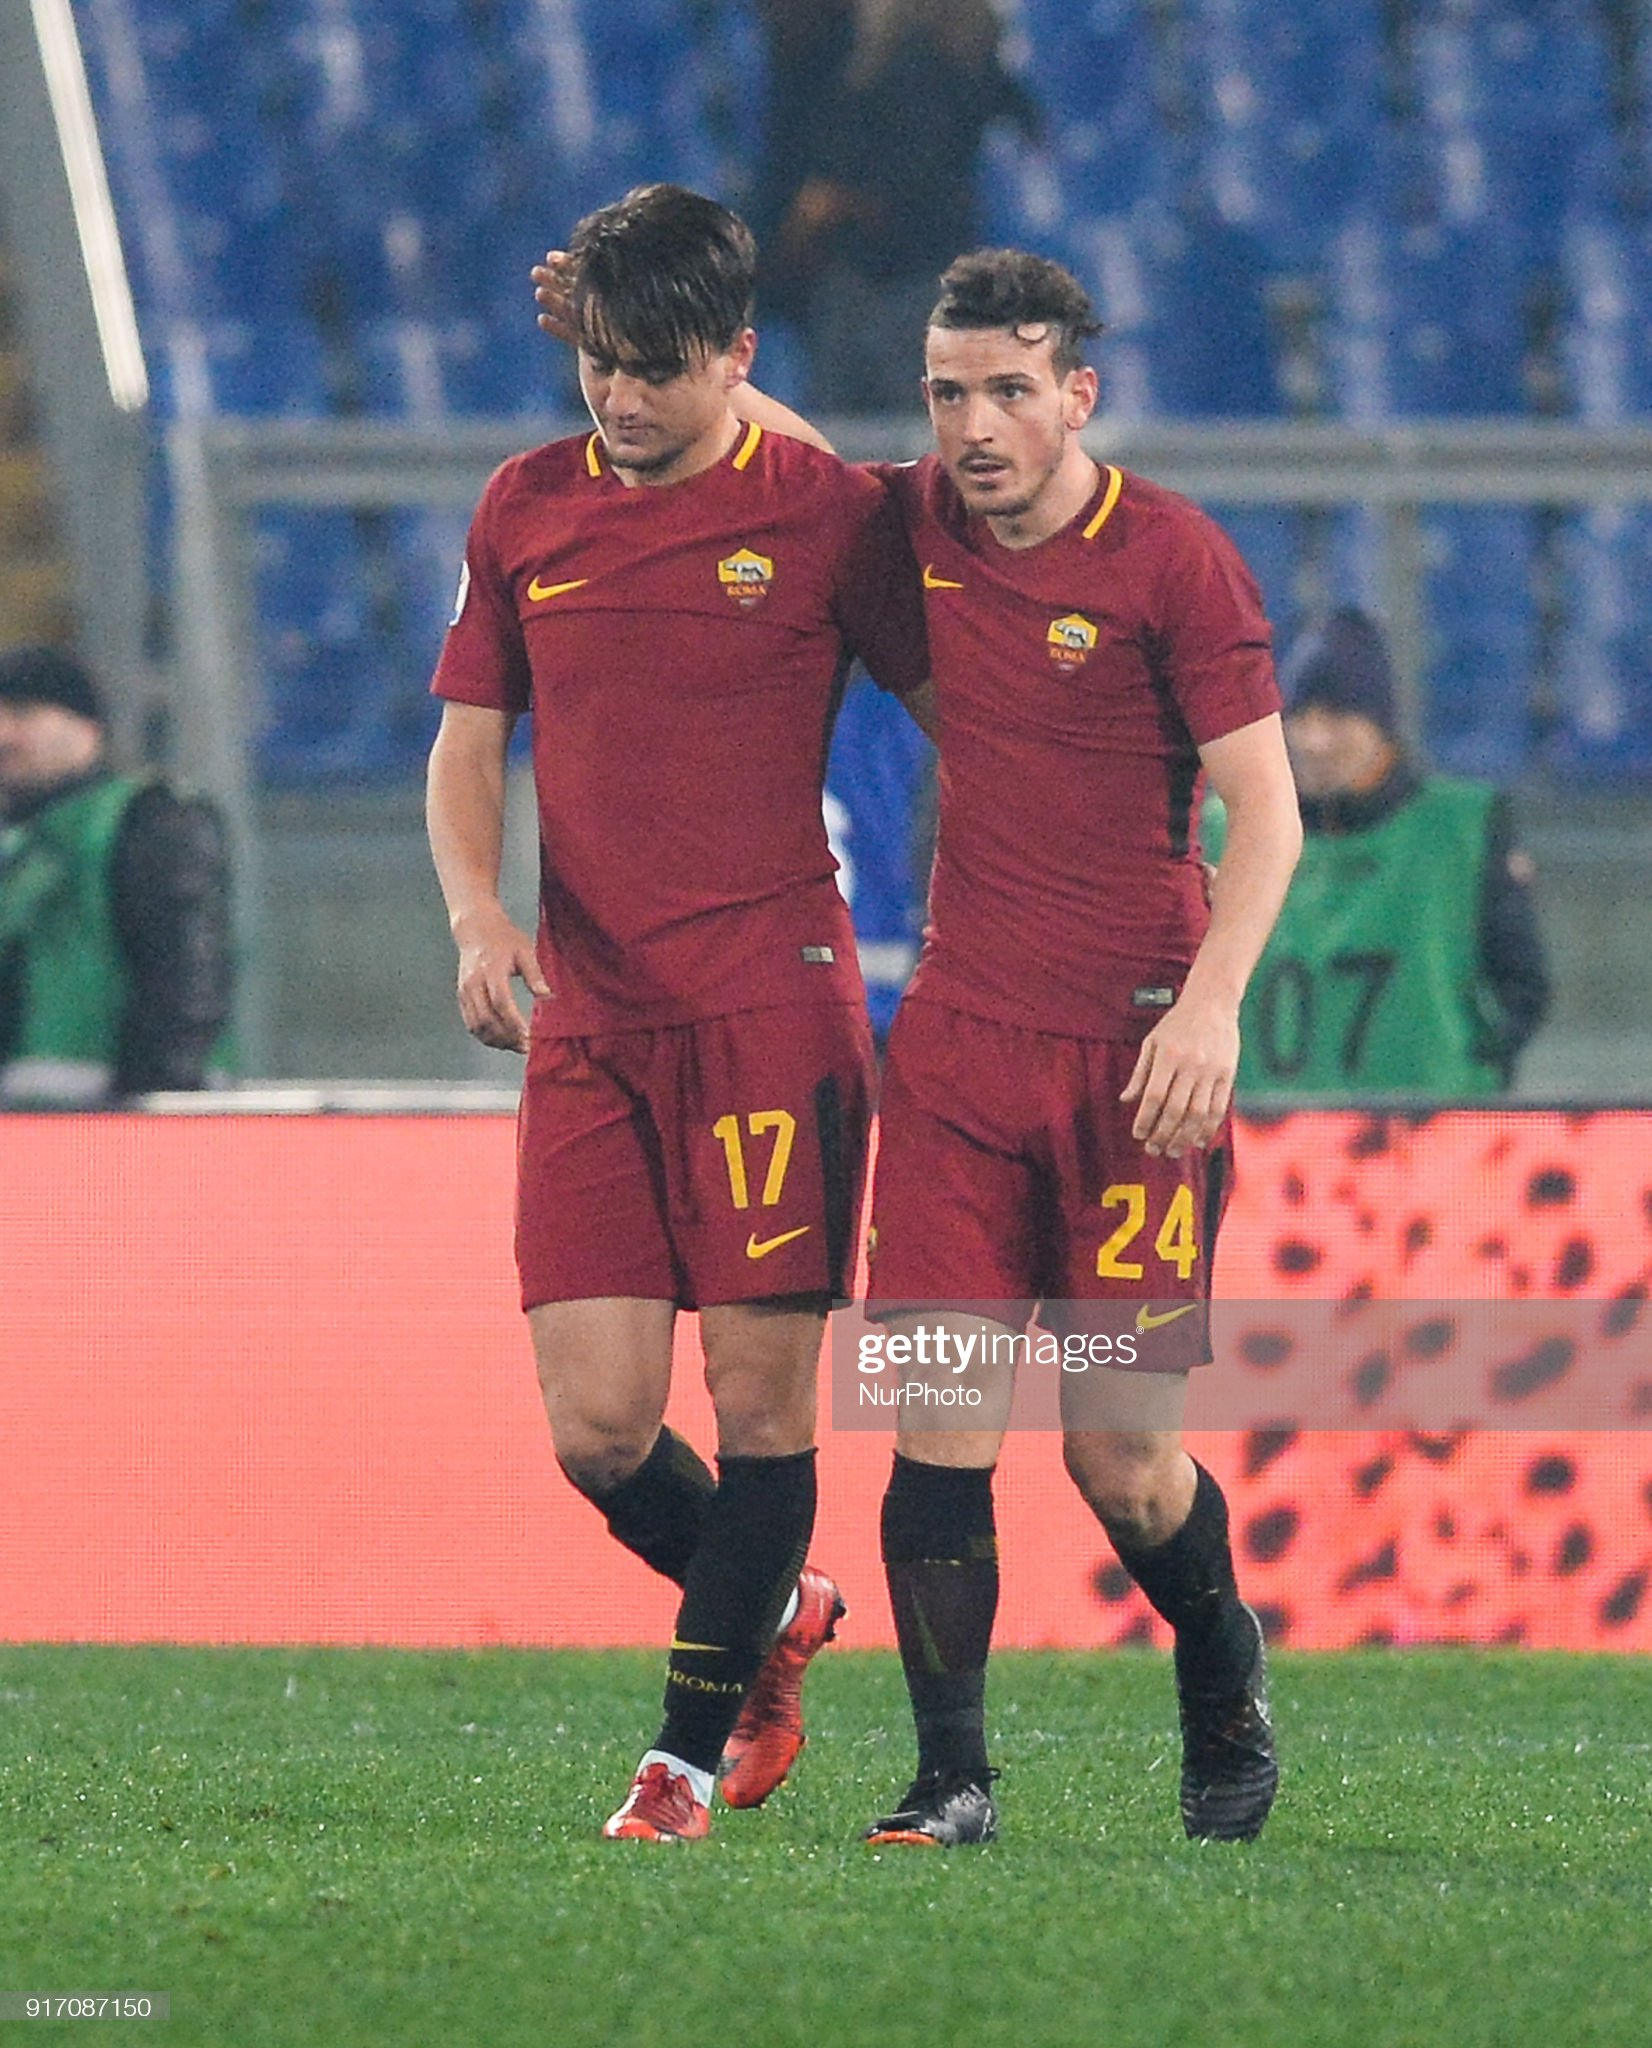 ¿Cuánto mide Alessandro Florenzi? - Real height Cengiz-under-celebrates-with-alessandro-florenzi-after-scoring-a-goal-picture-id917087150?s=2048x2048